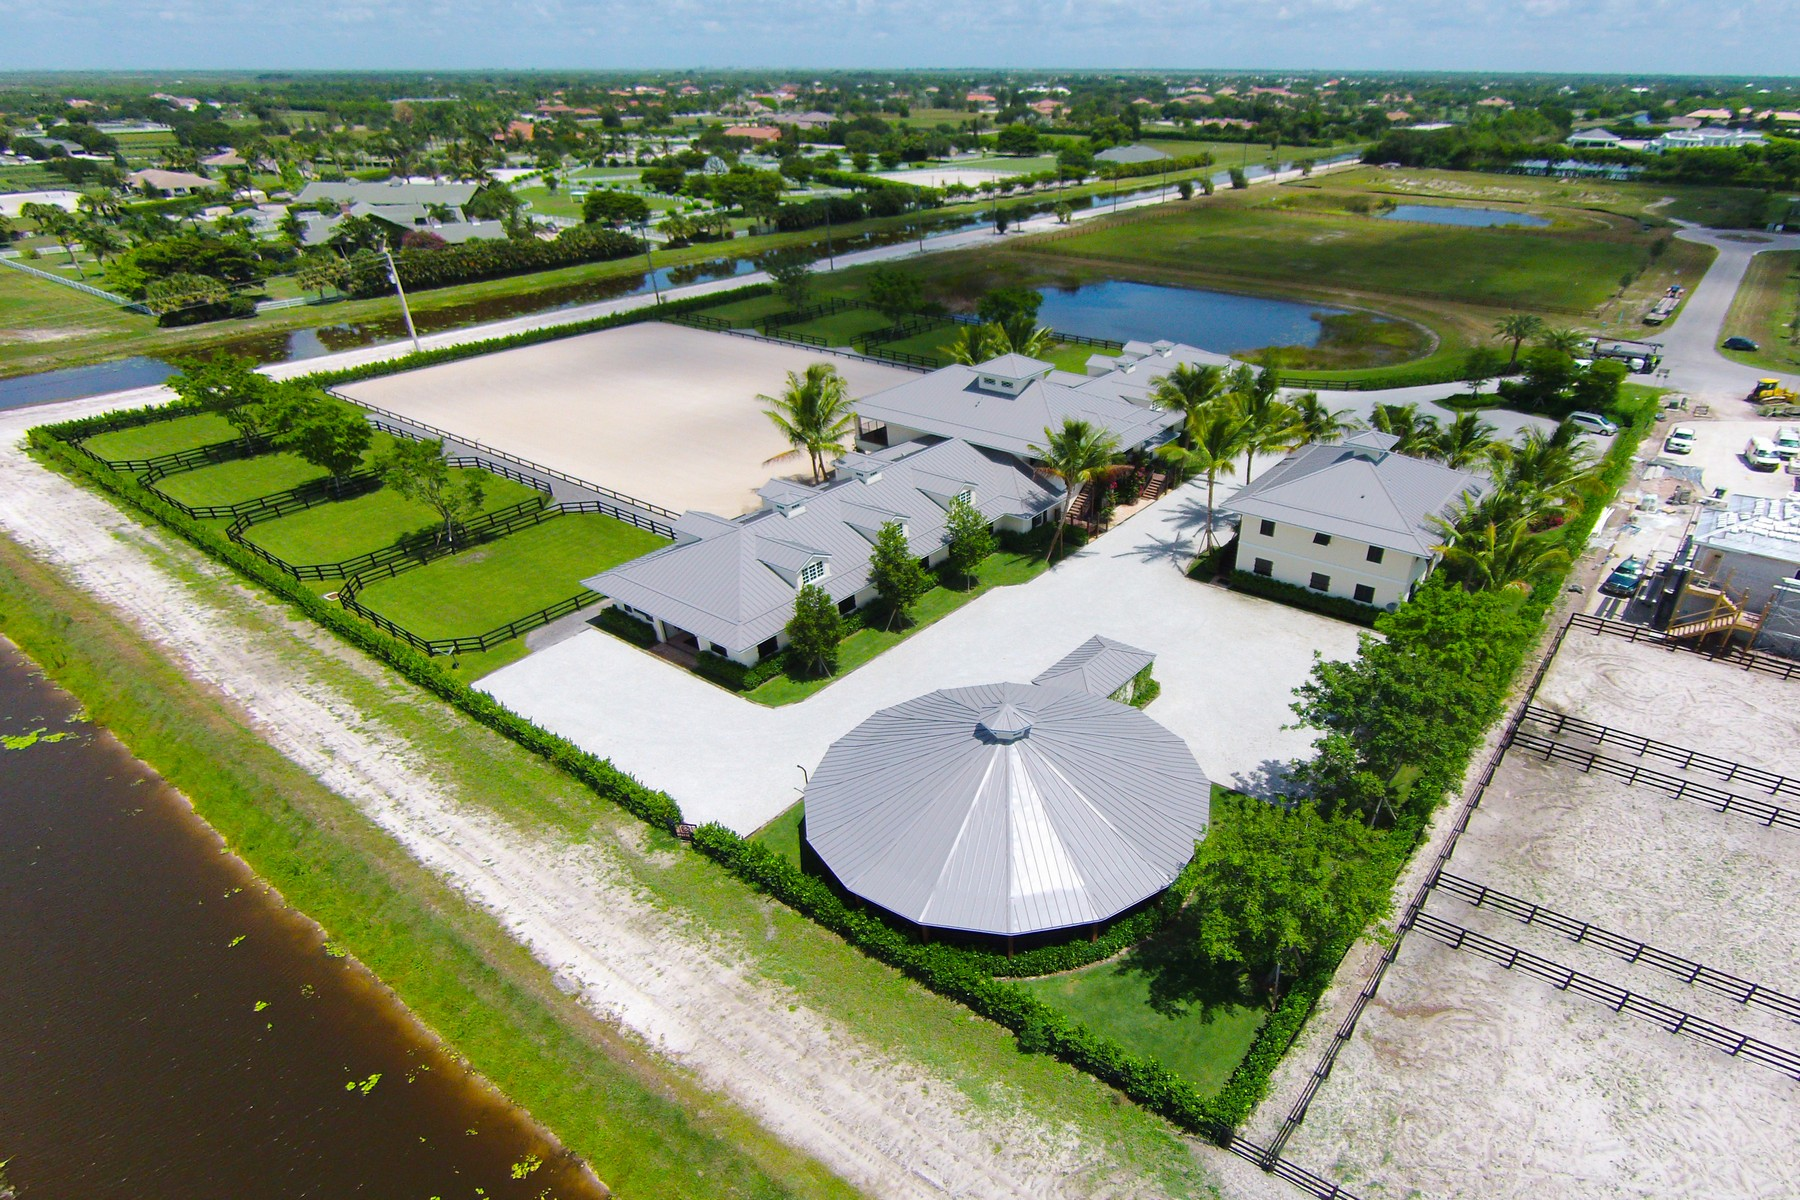 Farm / Estate for Rent at 14942 Grand Prix Village Drive 14942 Grand Prix Village Drive Wellington, Florida 33414 United States